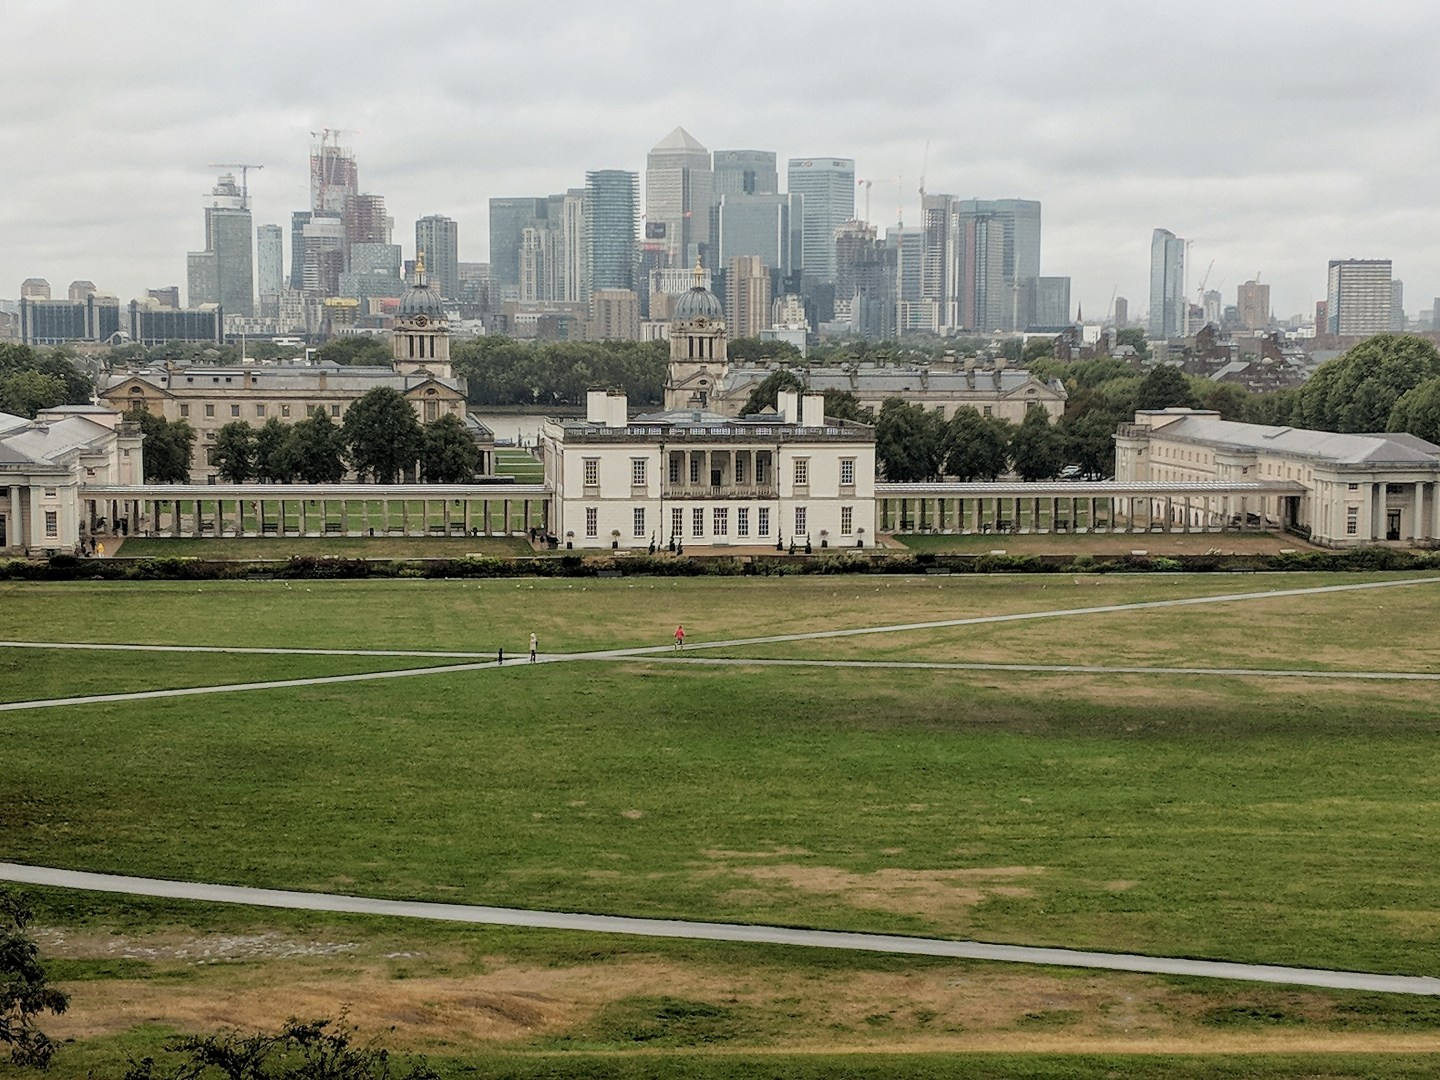 Formidable Joy | London | Travel | 5 things to experience in Greenwich, London | Greenwich | Emrites Airline Cable Car | National Maritime Museum | The Great British Seaside Exhibition | Prime Meridian Line | The Royal Observatory | Peter Harrison Planetarium | Dinosaurs In The Wild